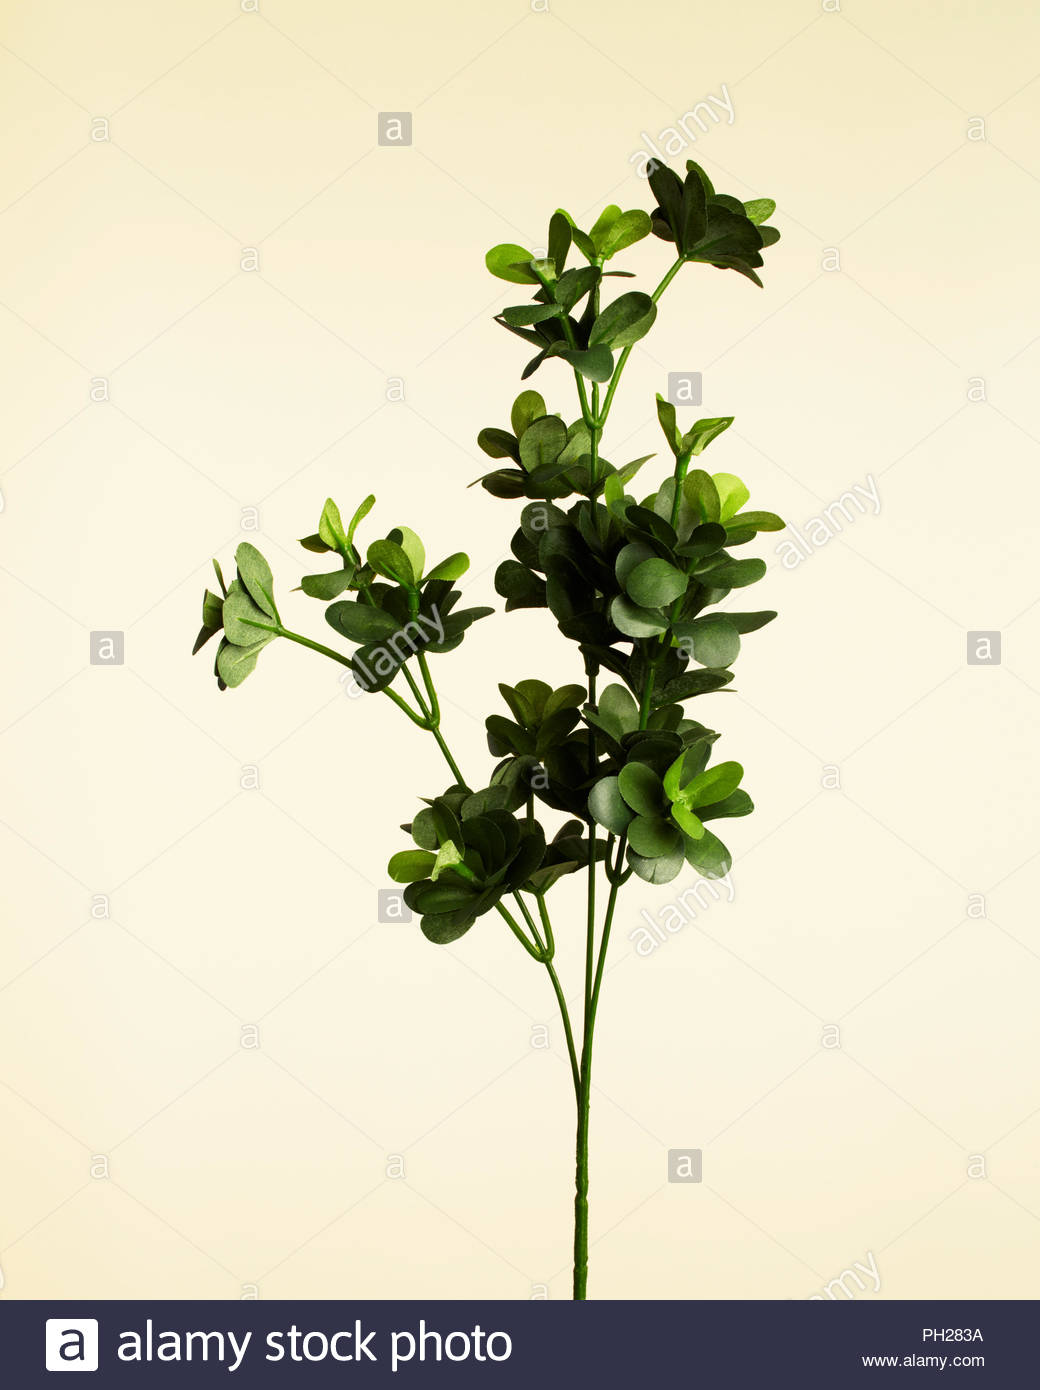 Twig with leaves - Stock Image